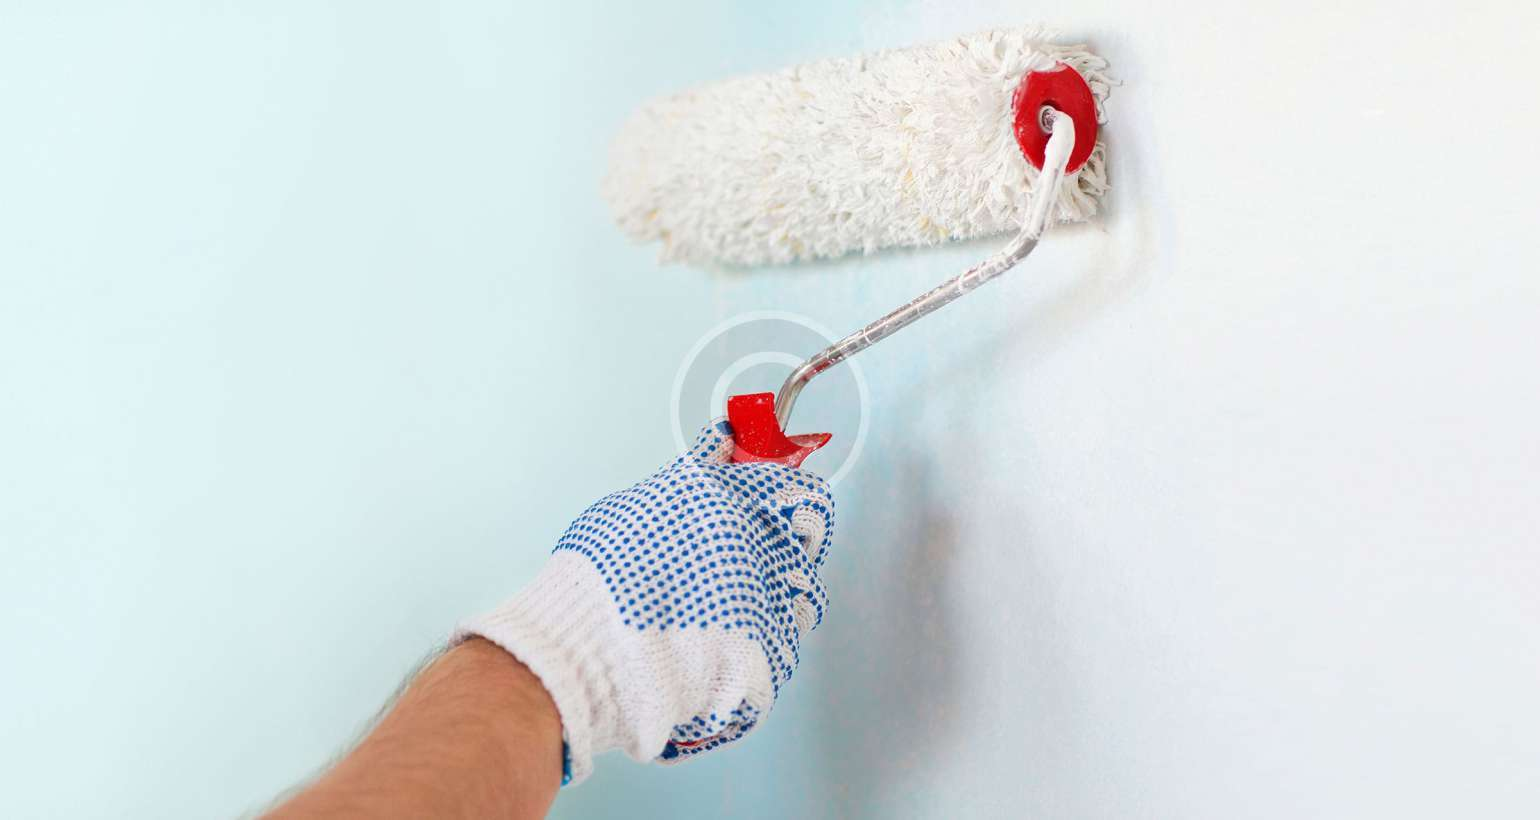 Lead-Based Paint Remediation